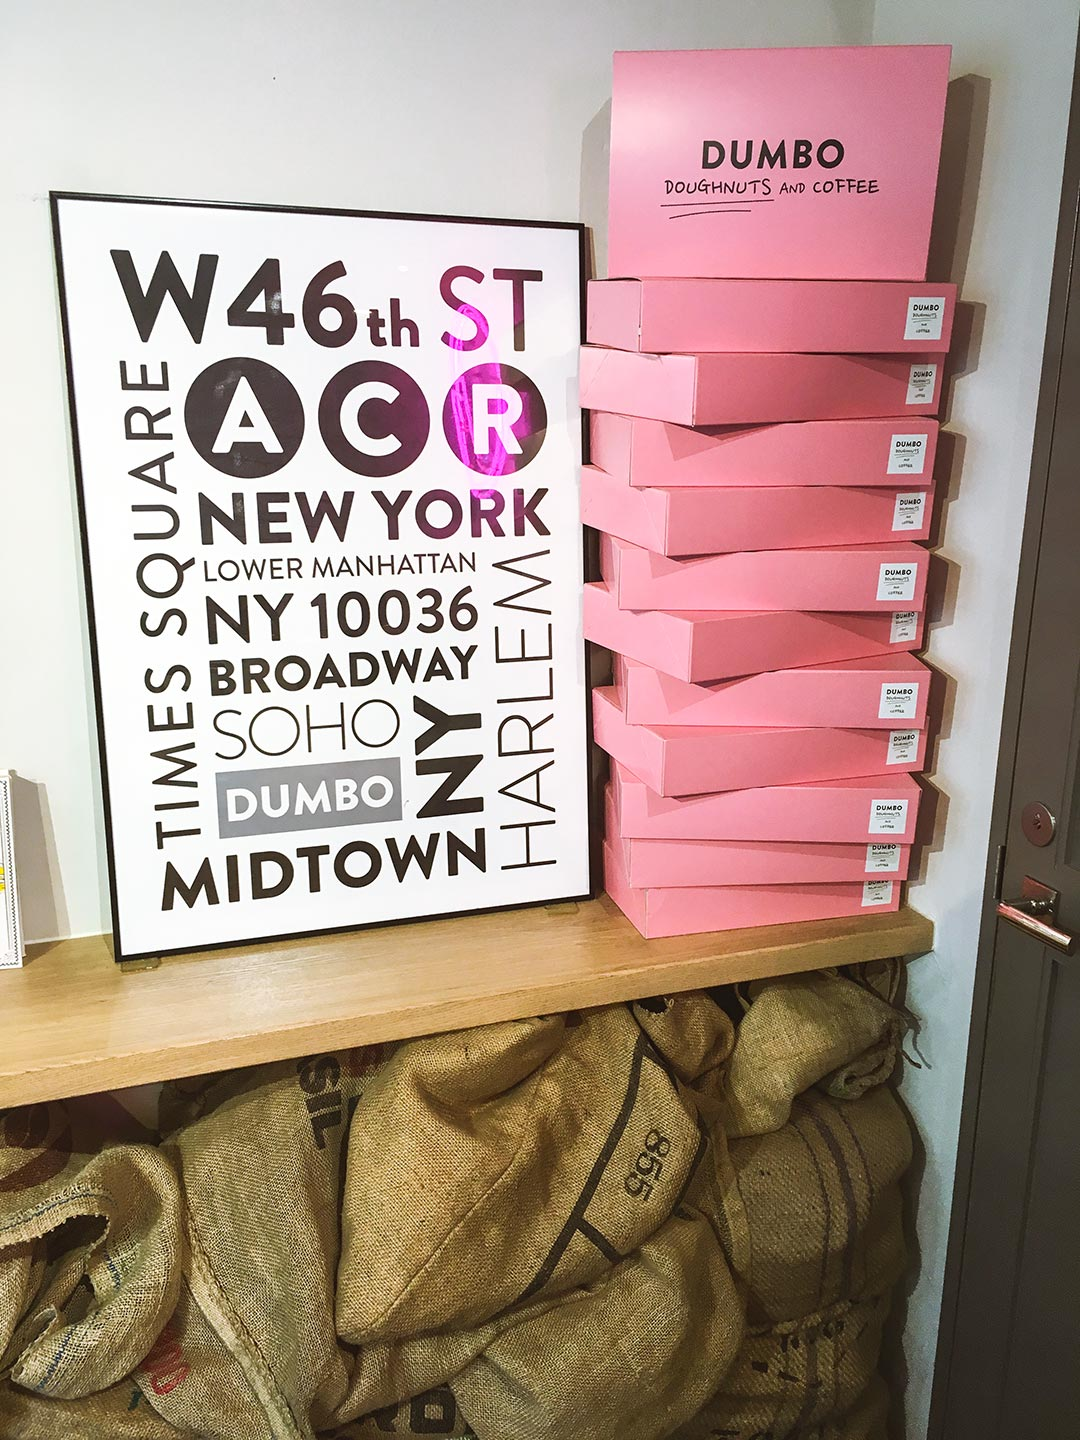 New York City posters and pink boxes at Dumbo Doughnuts in Azabujuban